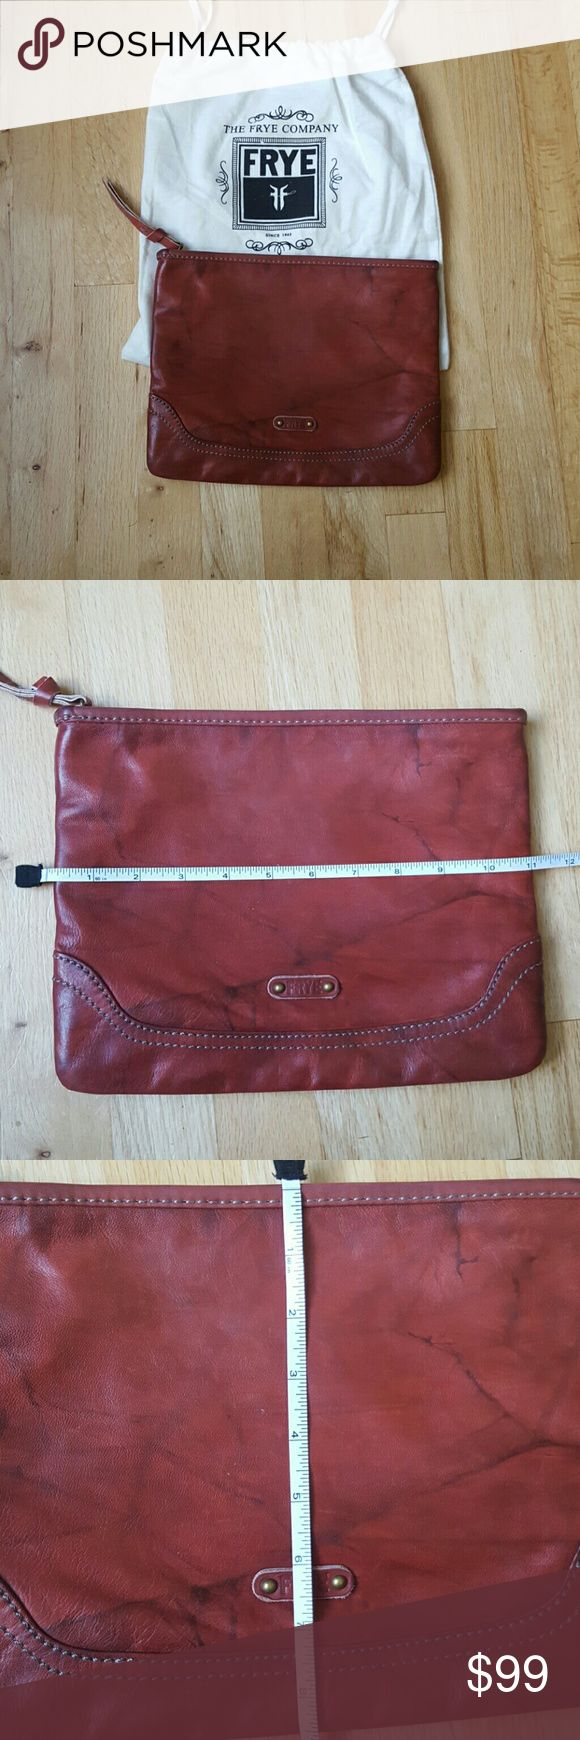 Frye Campus clutch - saddle Like new condition.  Comes with dust bag.  Clean on the inside.   Gorgeous frye quality clutch.  Great for small electronics, mini ipad, kindle, etc.  Measurements shown in pictures Frye Accessories